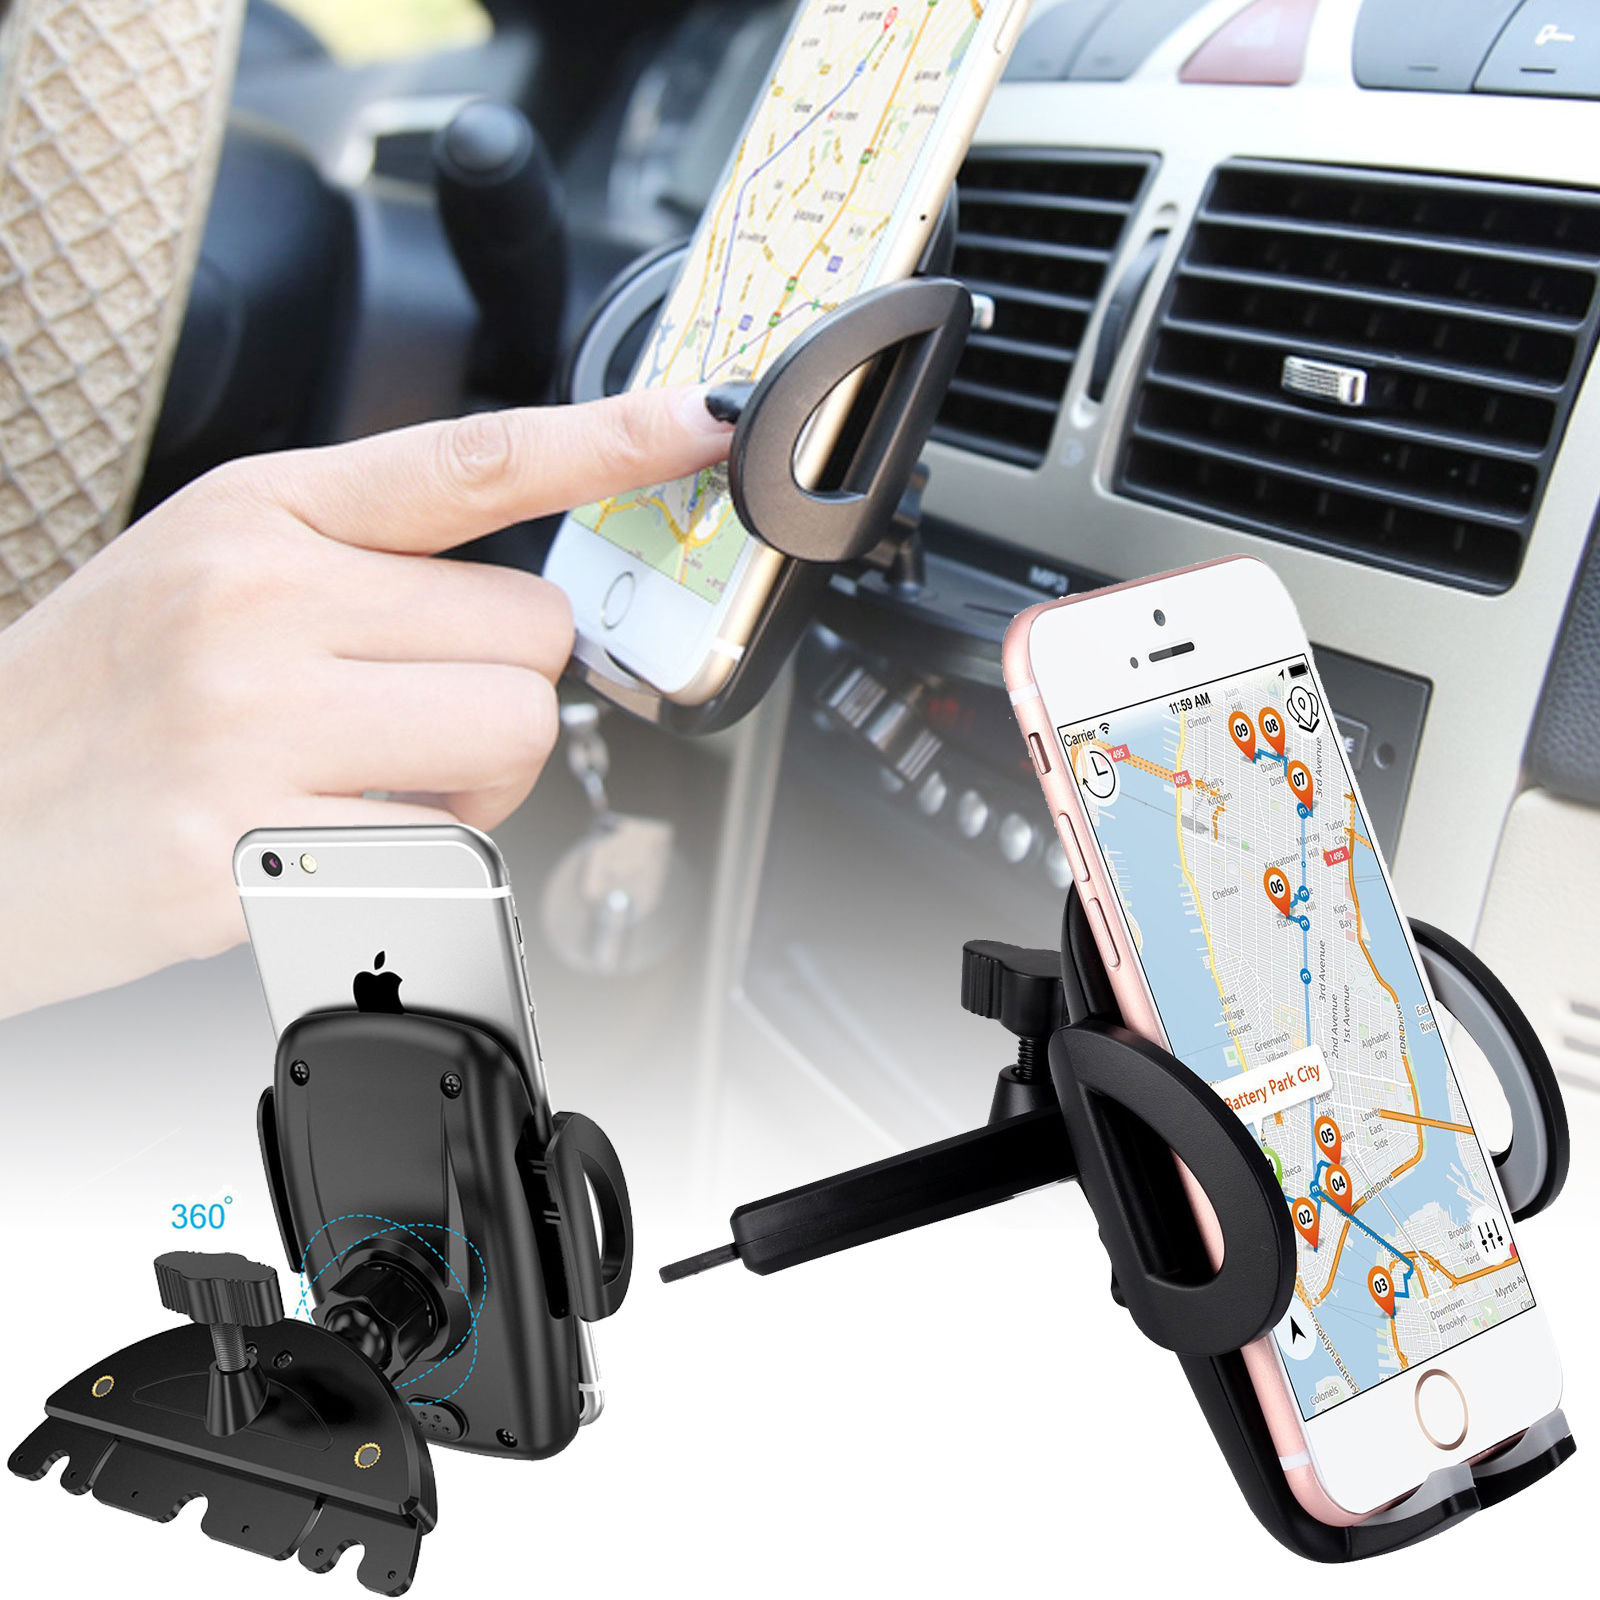 iPod Touch Mpow Universal CD Slot Car Mount Car Cradle With Spring Holder HTC Nexus 5 Sony /& GPS Devices 360 Degree Rotation Phone Holder for iPhone 7//6// 6 Plus// 6S// 5// 5S Car Phone Holder LG